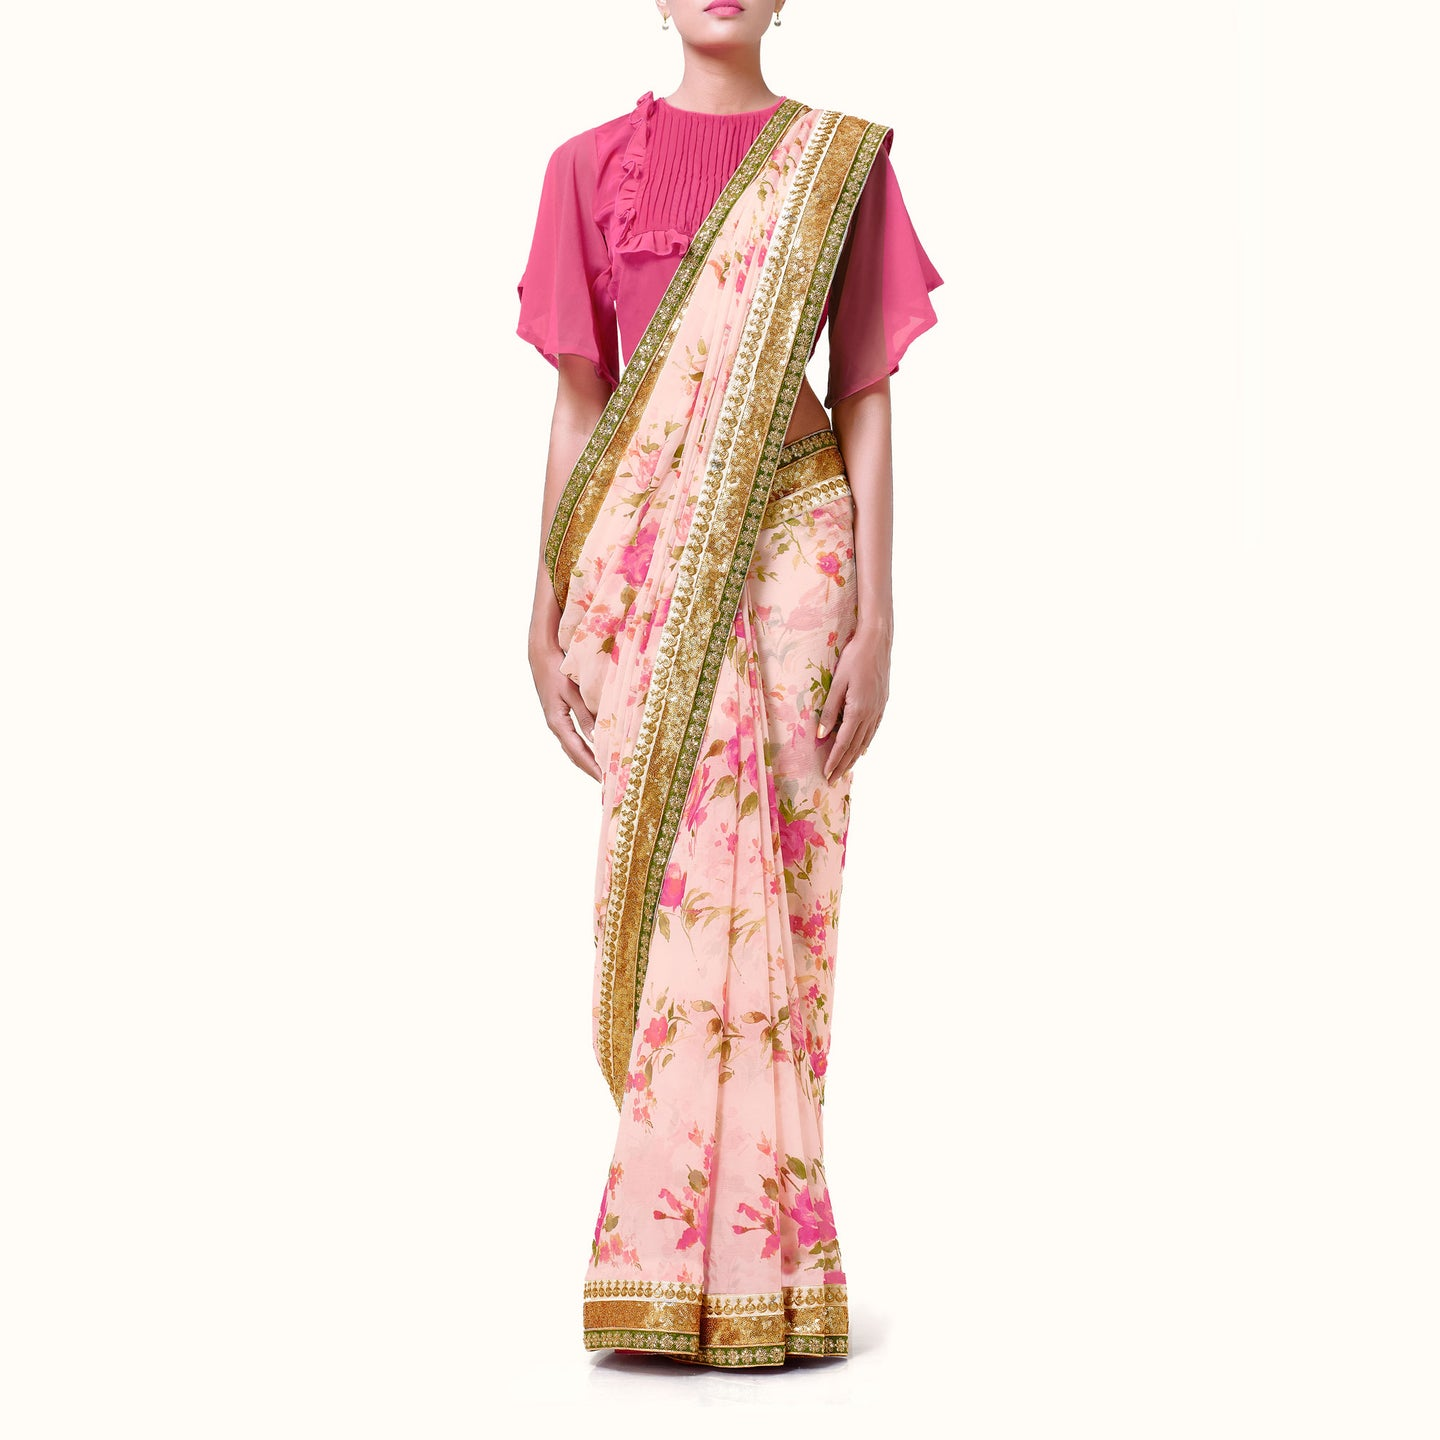 'Summer Roses' Floral Print Silk Chiffon Sari With Blouse Piece